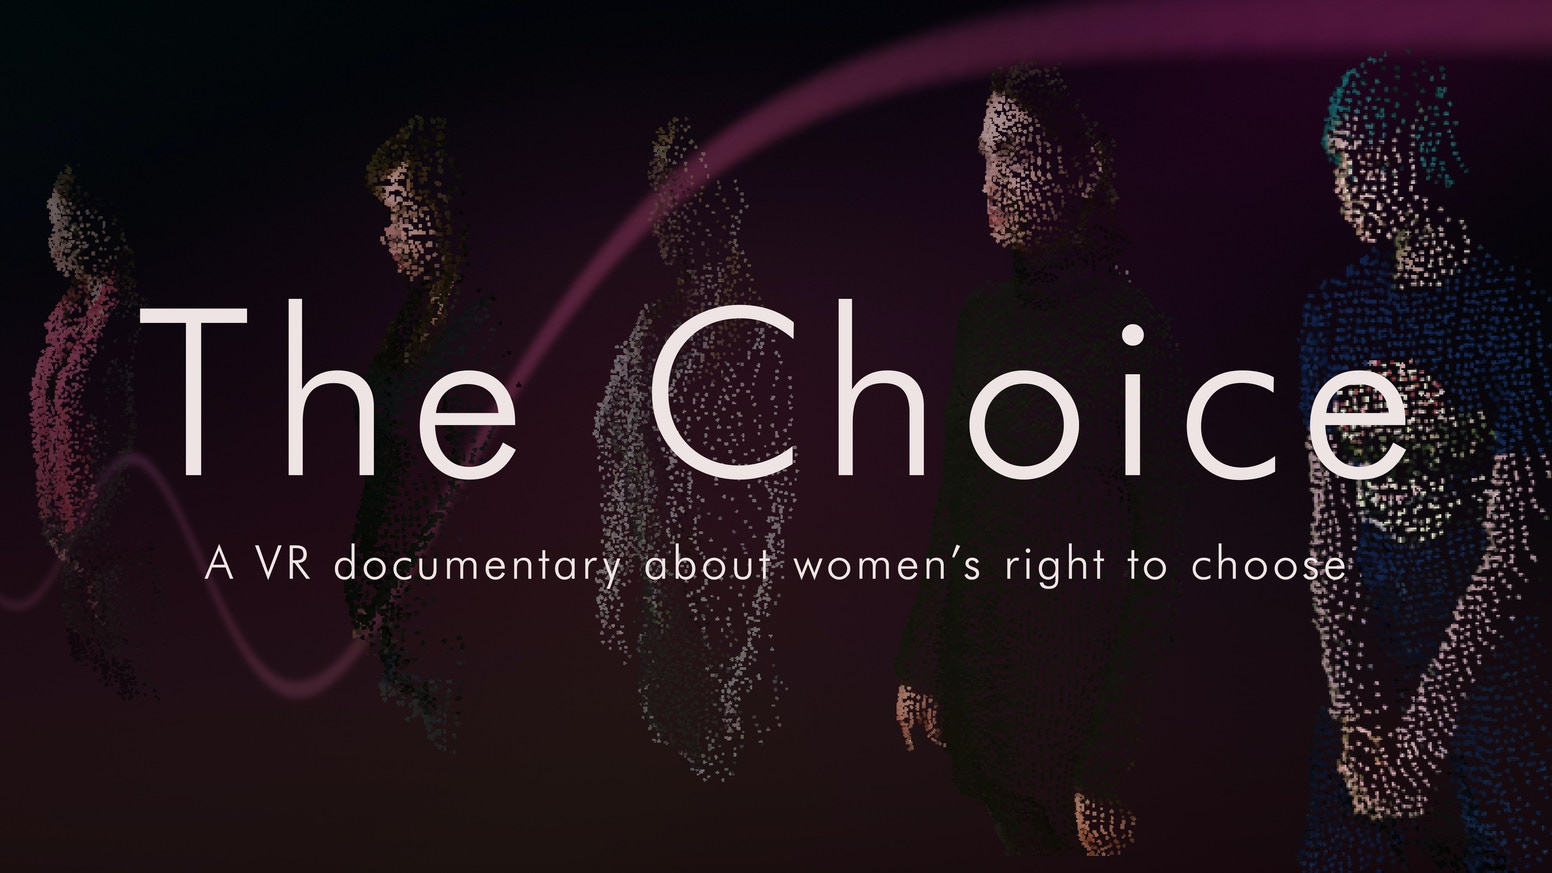 A Virtual Reality experience inviting you to enter the digital consciousness of a virtual woman considering abortion.-If you would like to still contribute, you can send money to our paypal account linked below.